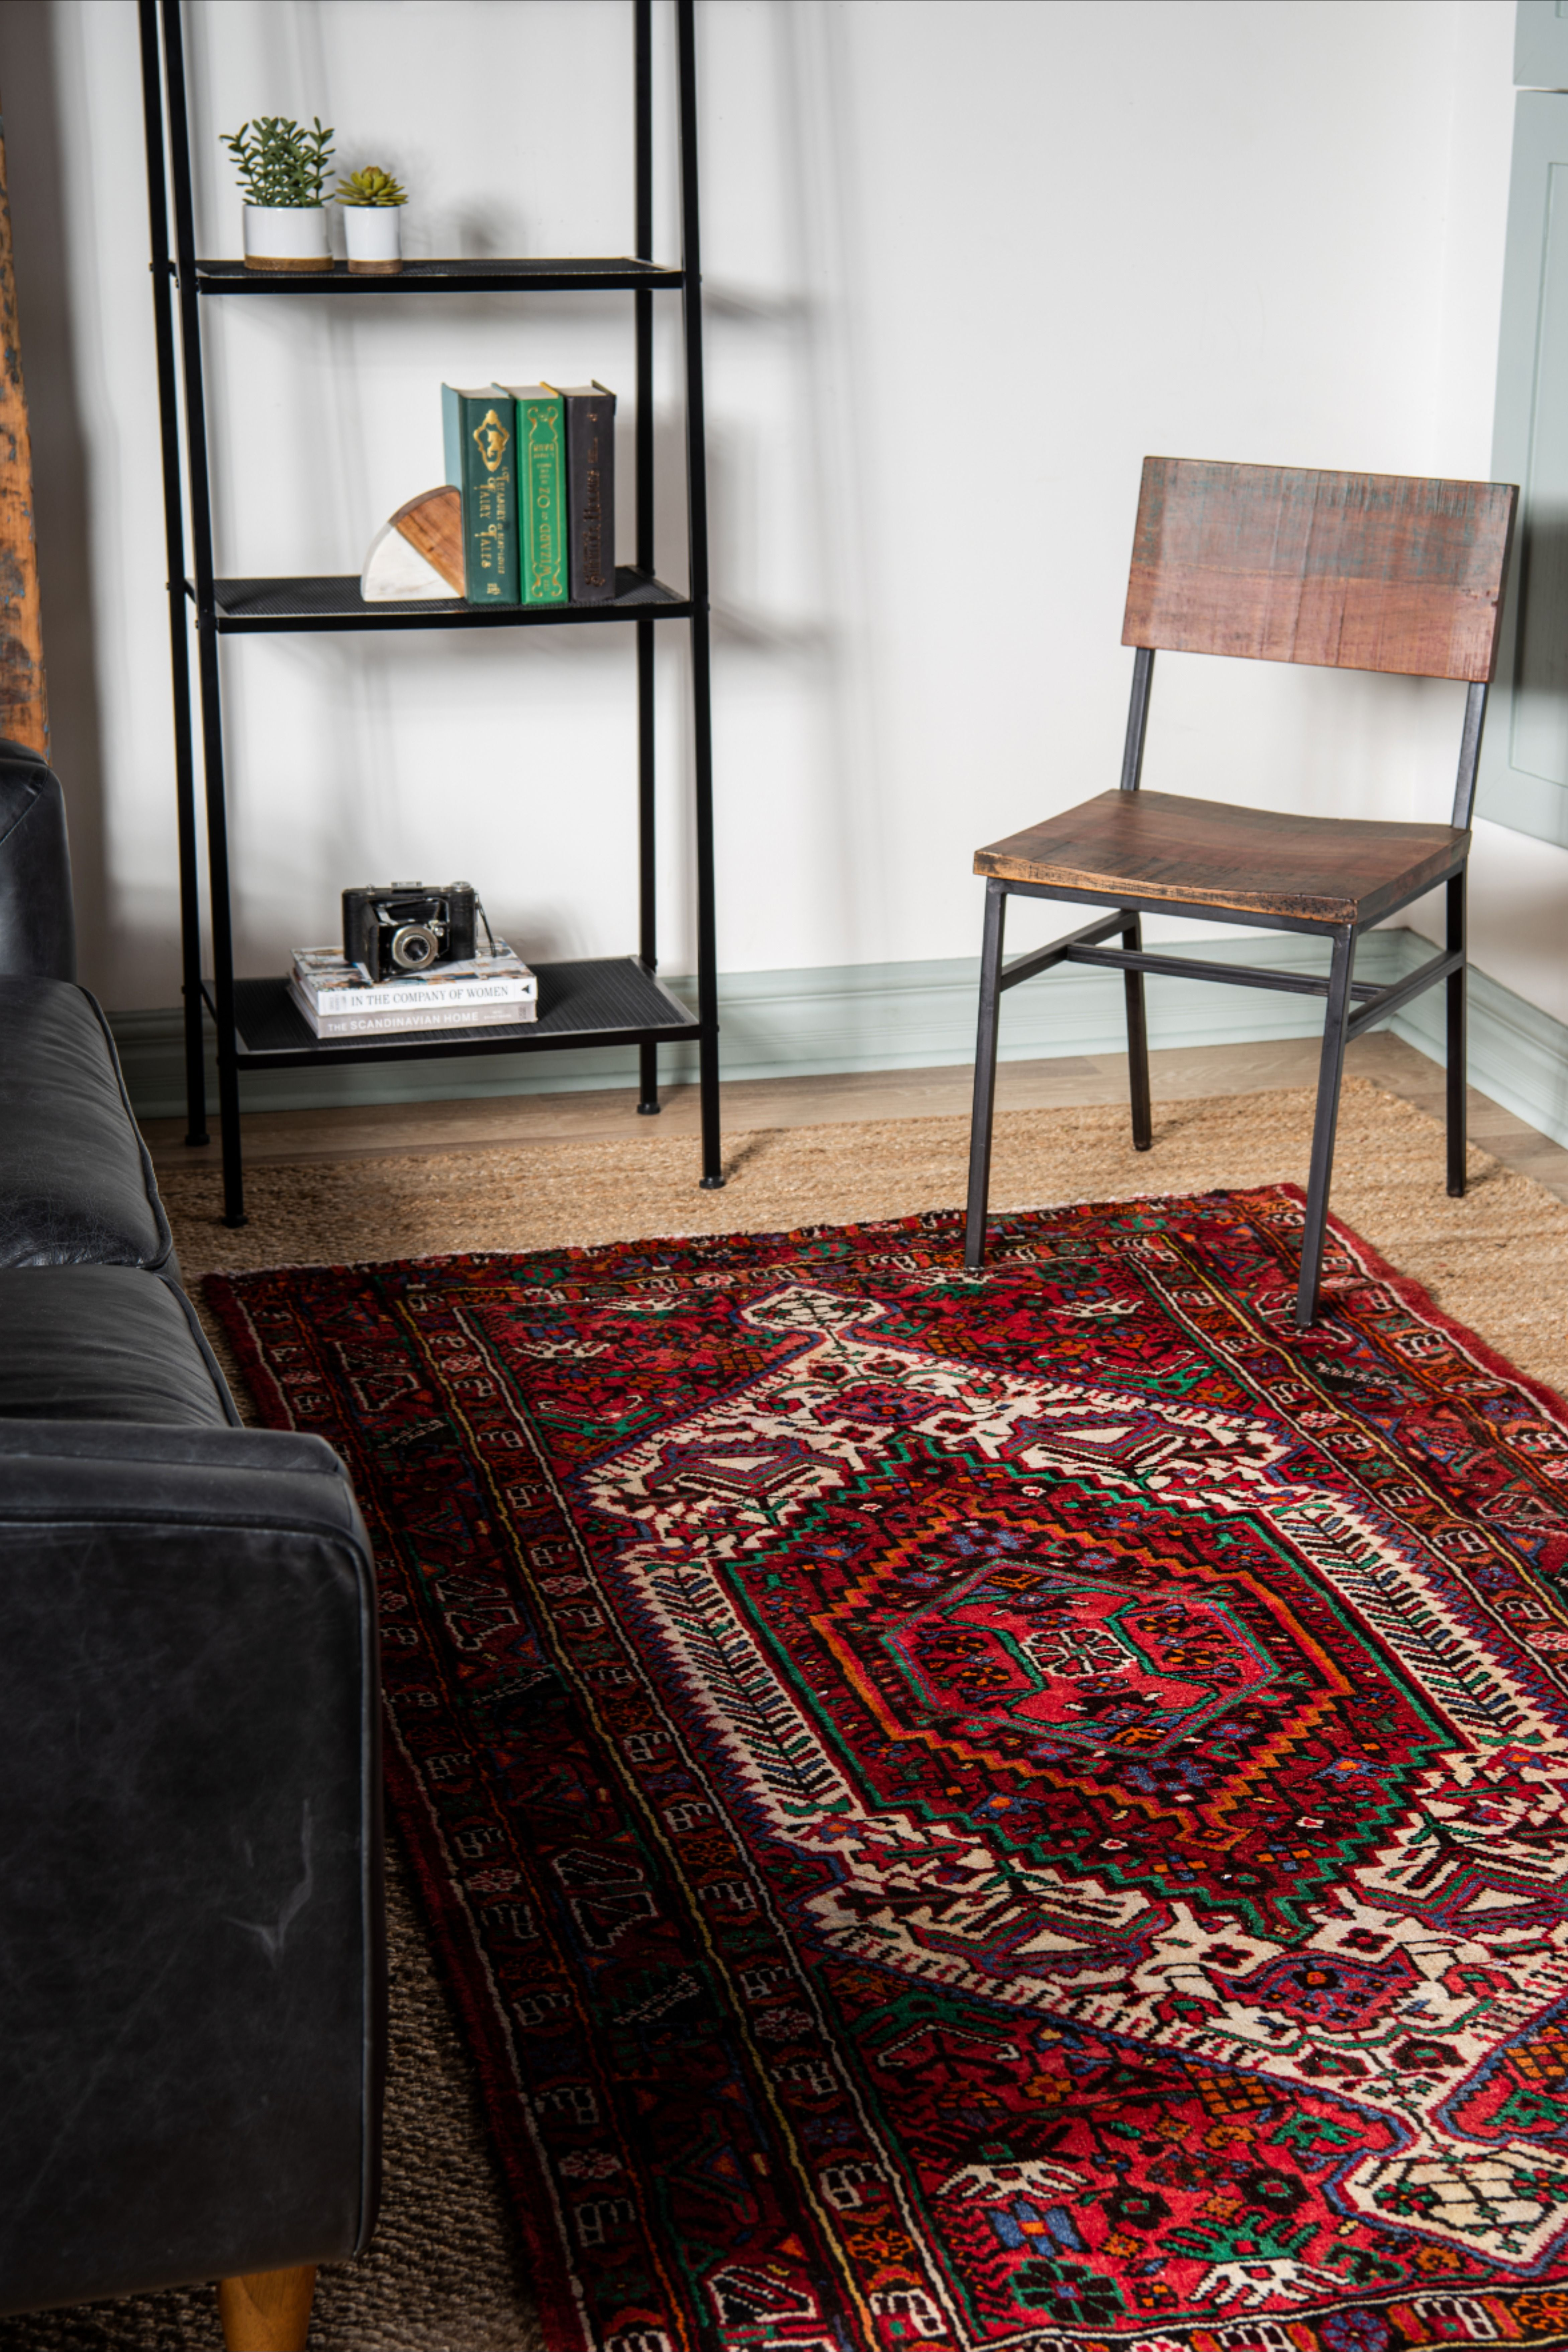 Traditional Persian Rugs In 2020 Rugs In Living Room Persian Rug Living Room Persian Rug #persian #rug #in #living #room